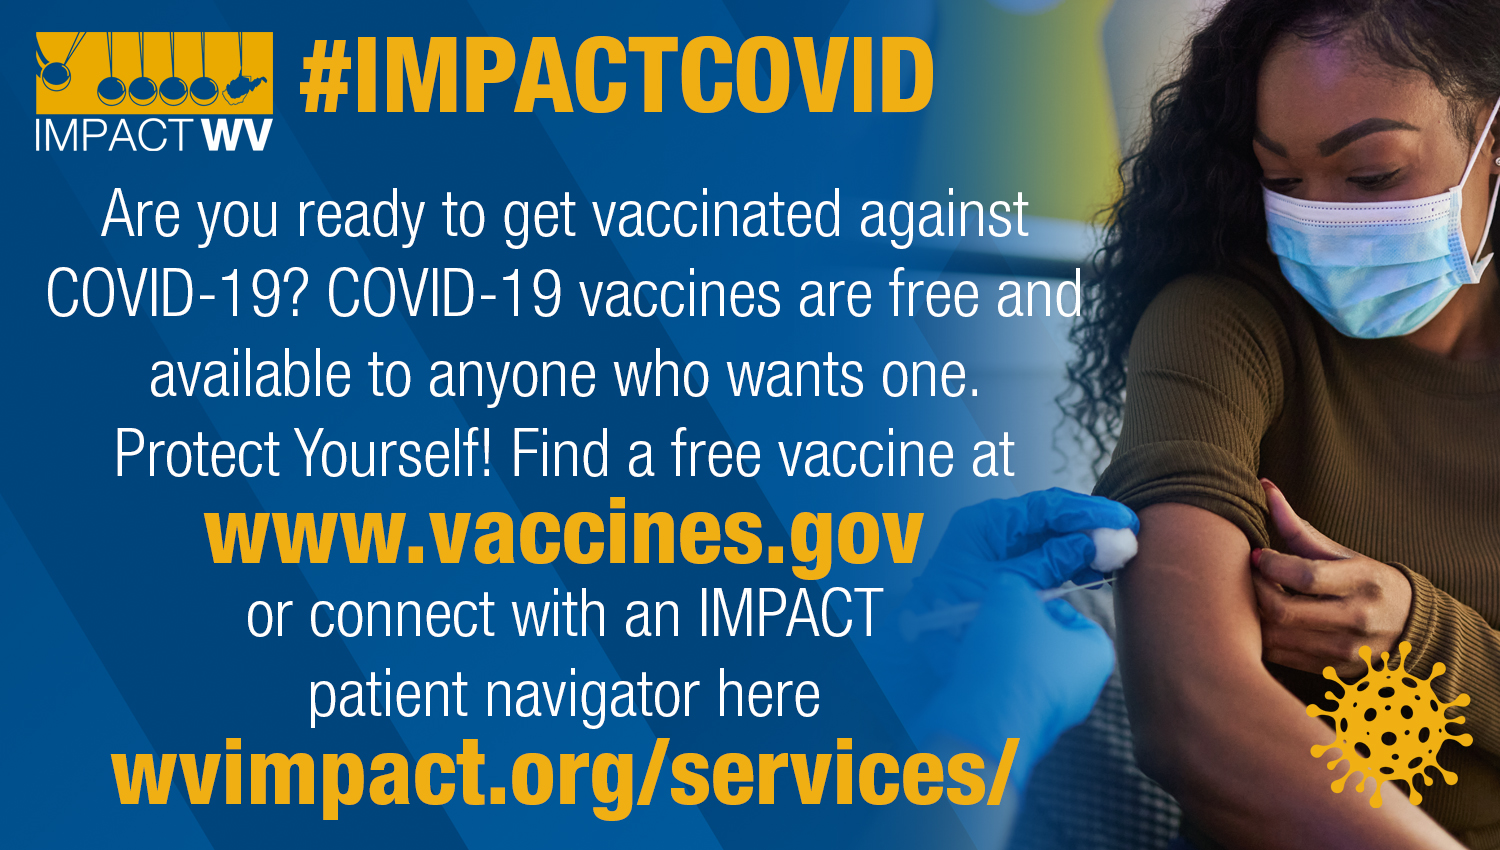 an image with the Are you ready text featuring a woman getting her COVID vaccine